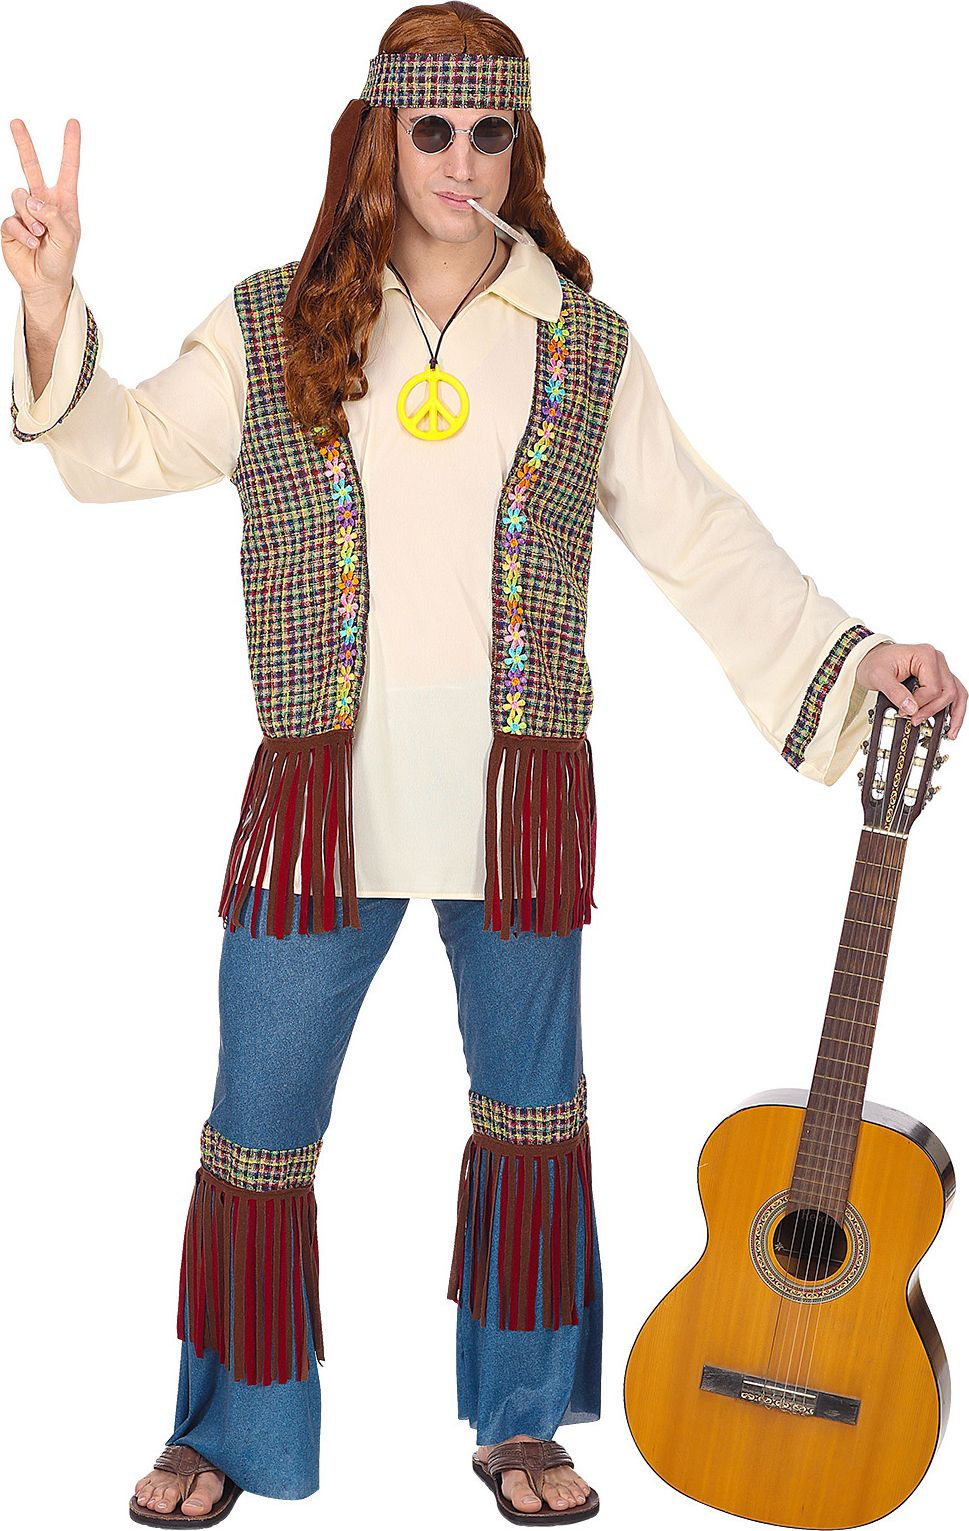 Hippie outfit 60s man